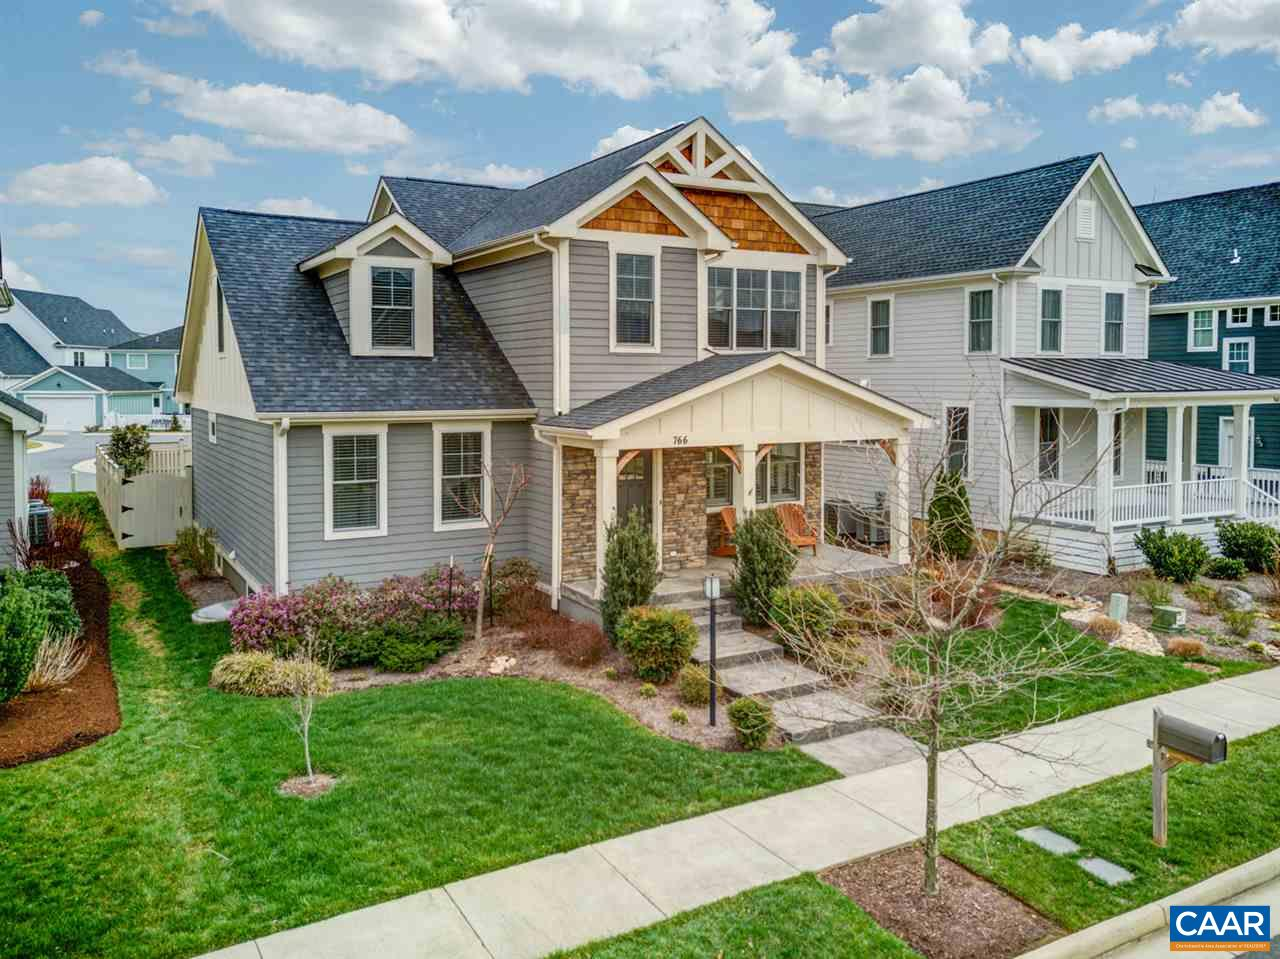 766 GOLF VIEW DR, CROZET, VA 22932